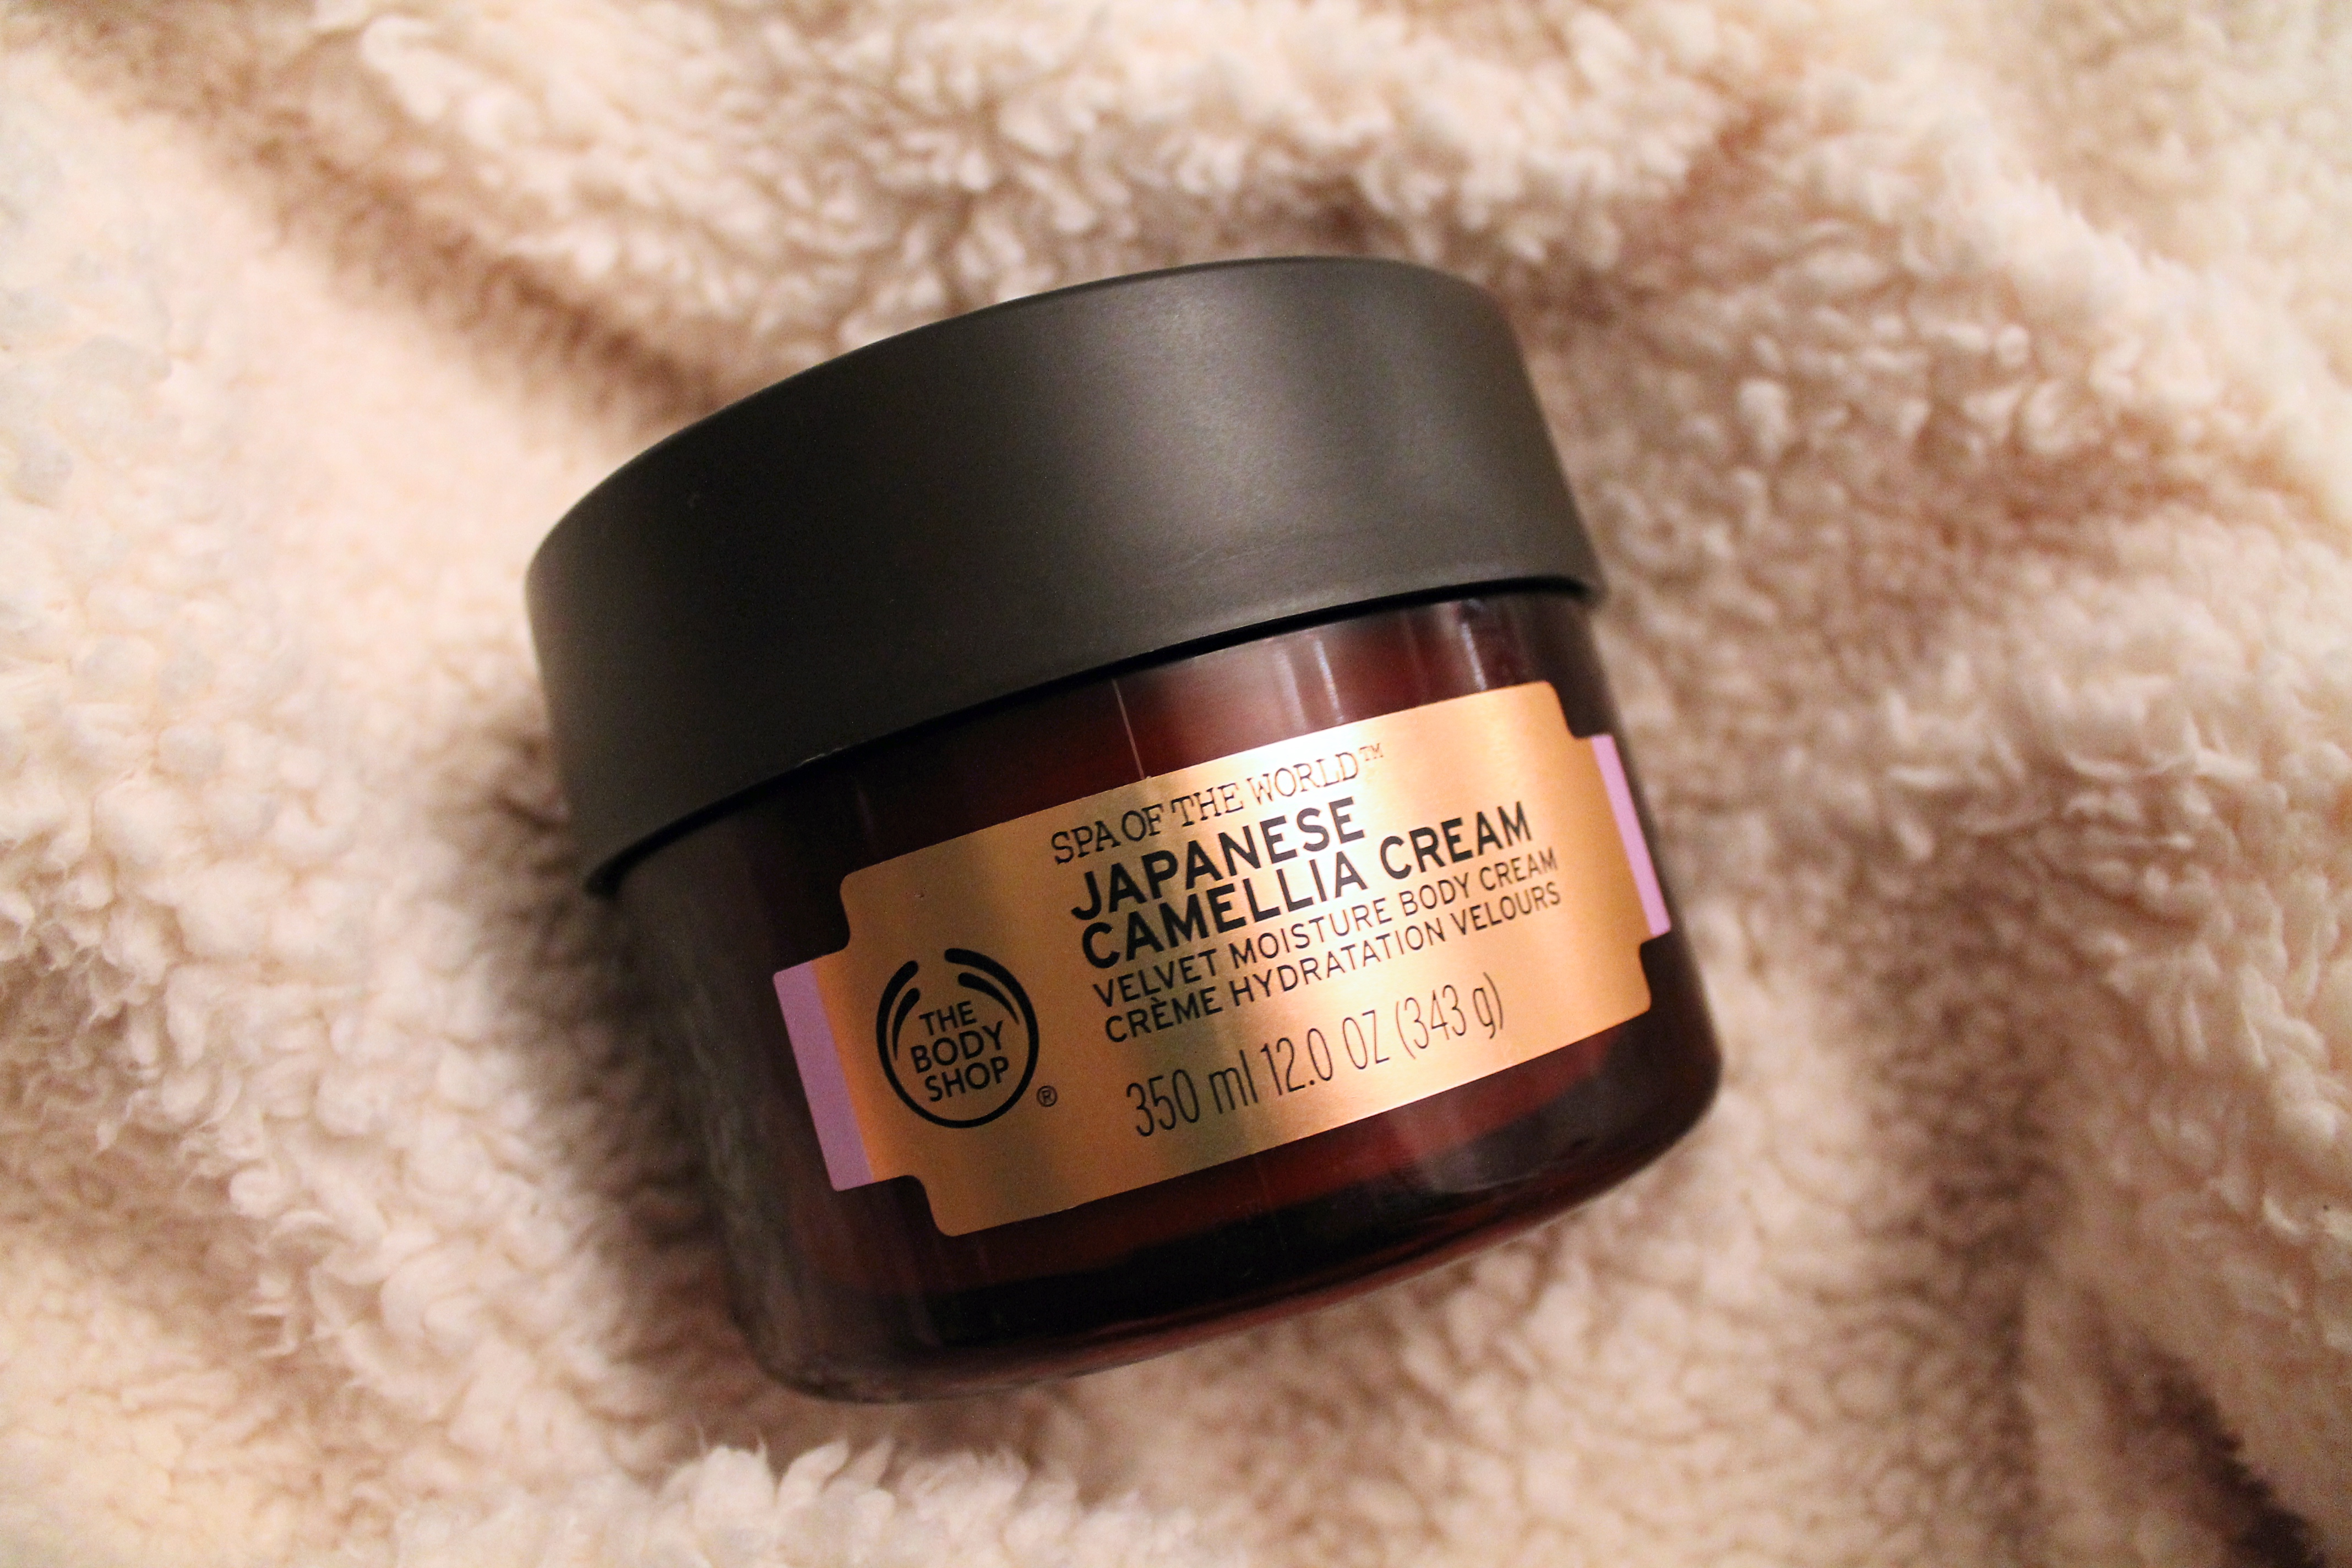 the body shop products - japanese camellia cream